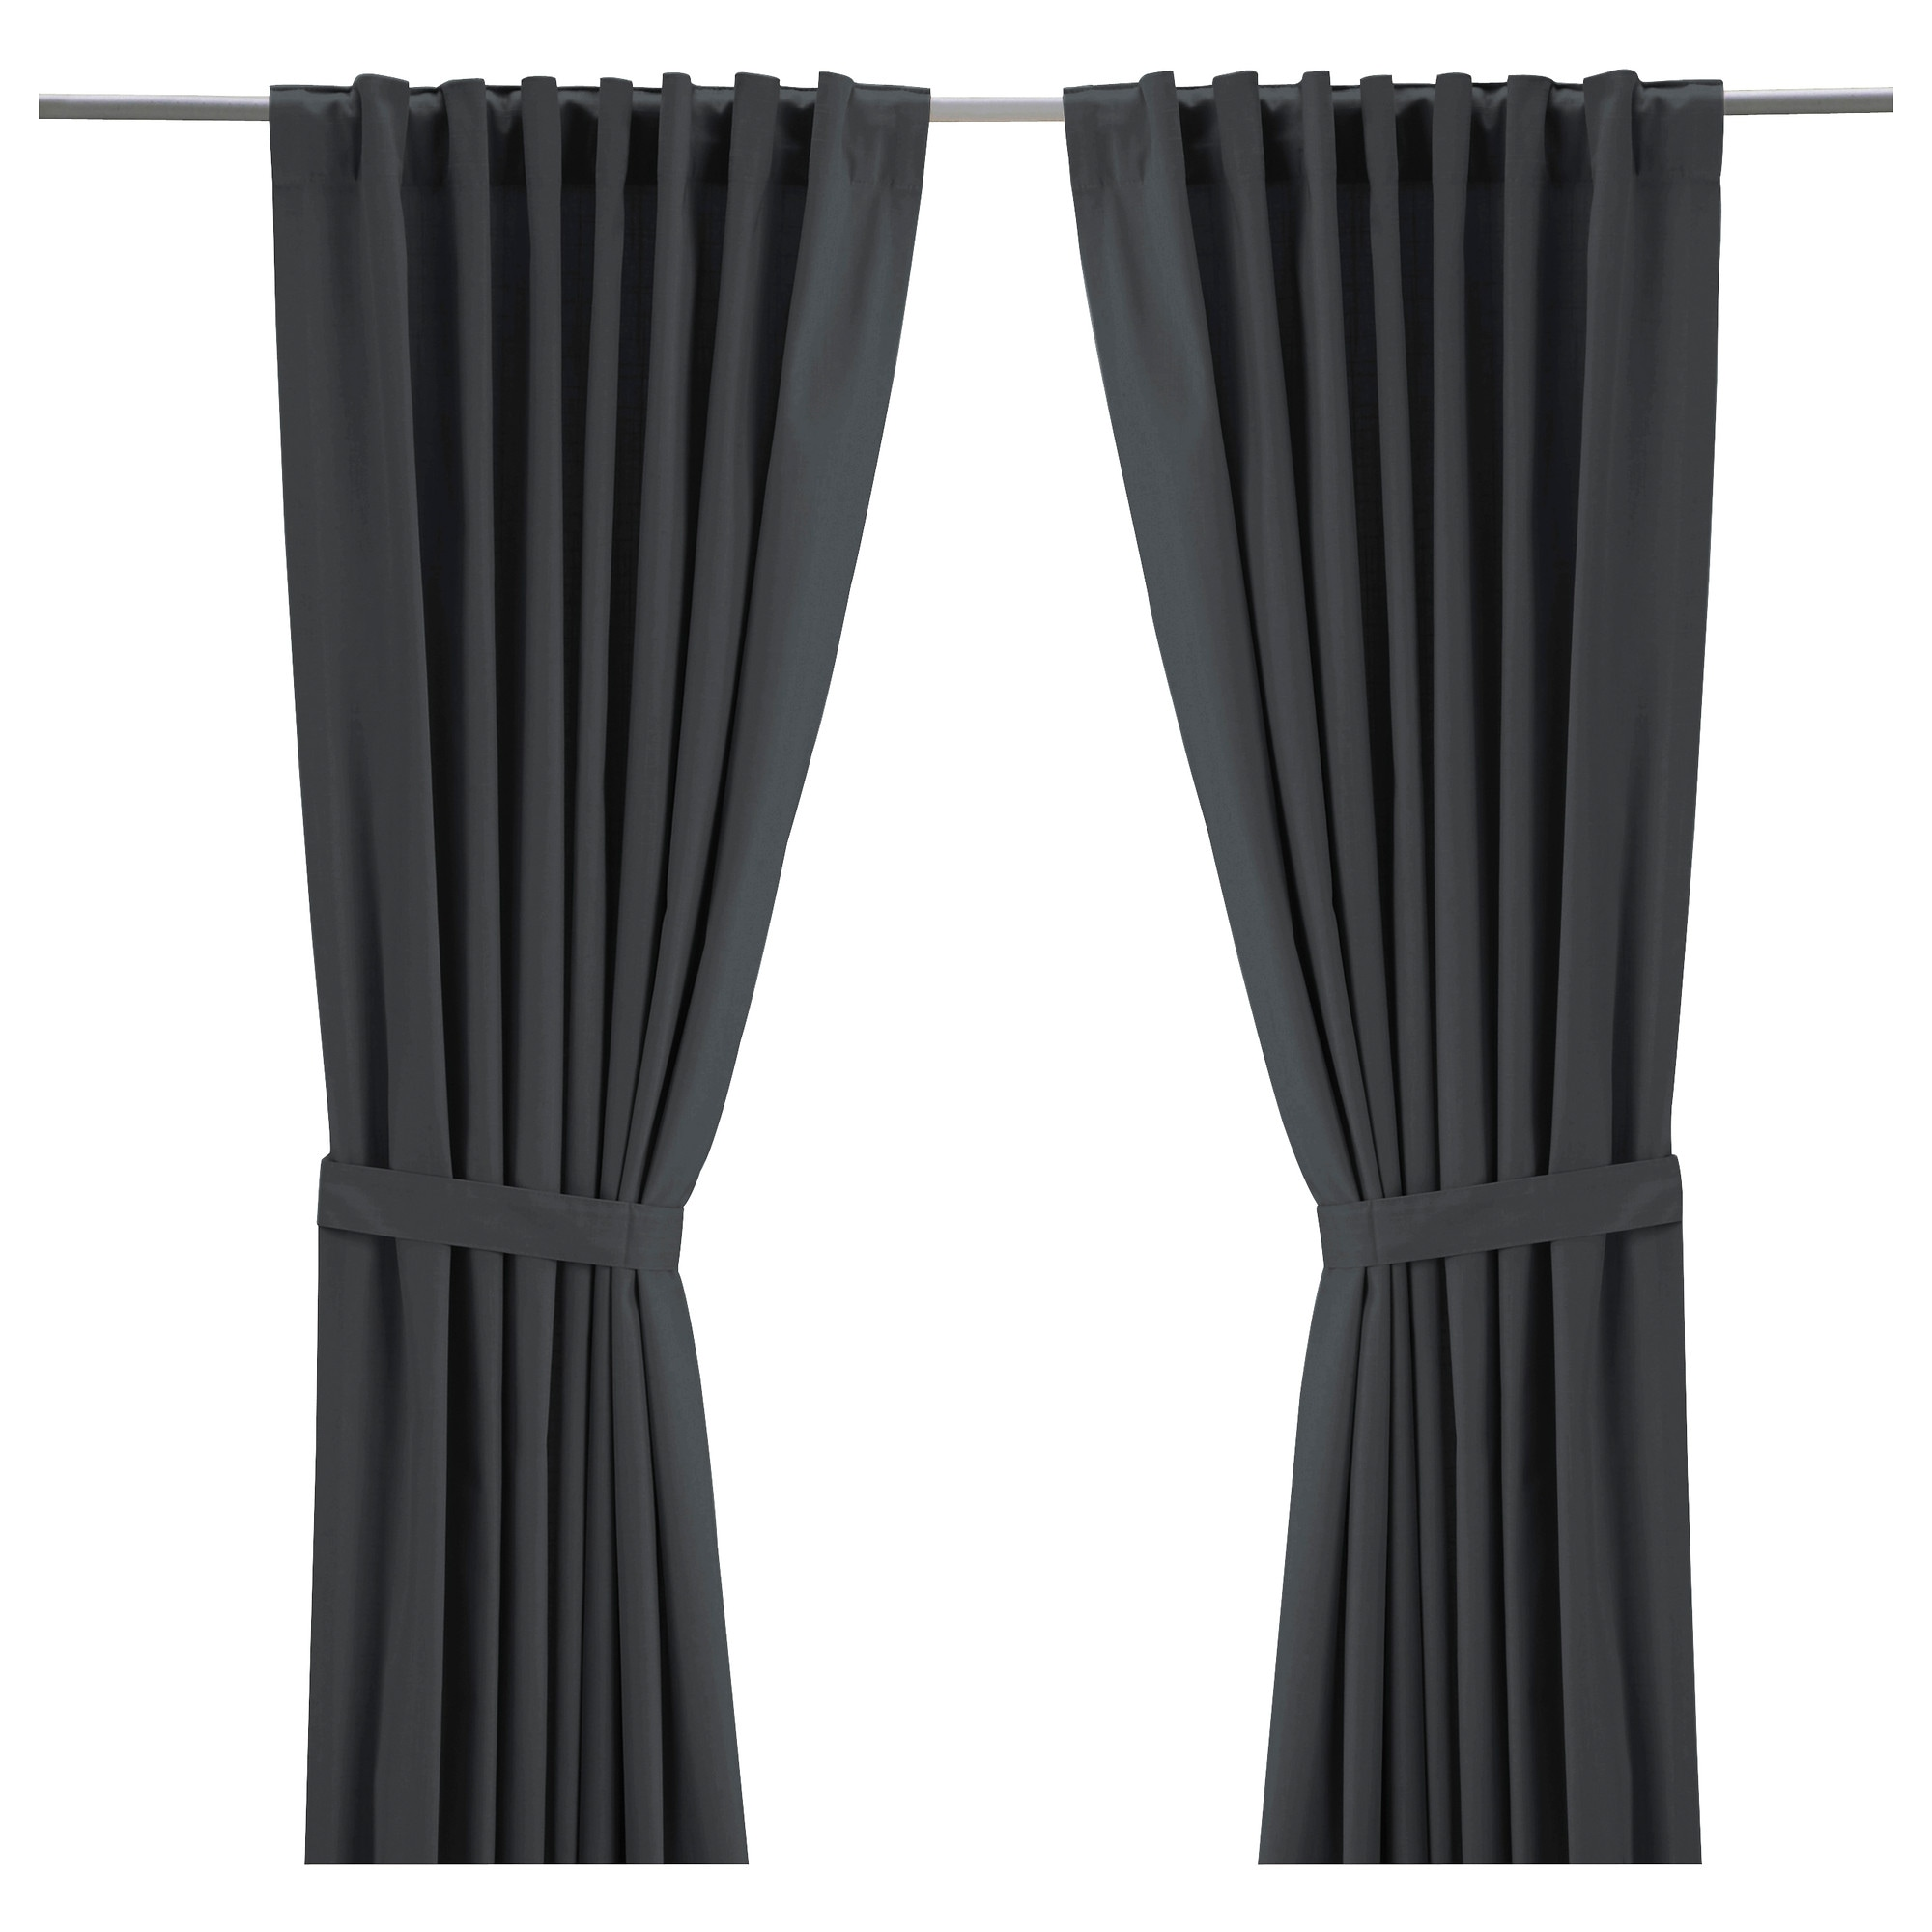 RITVA Curtains with tie-backs, 1 pair - 57x118 \